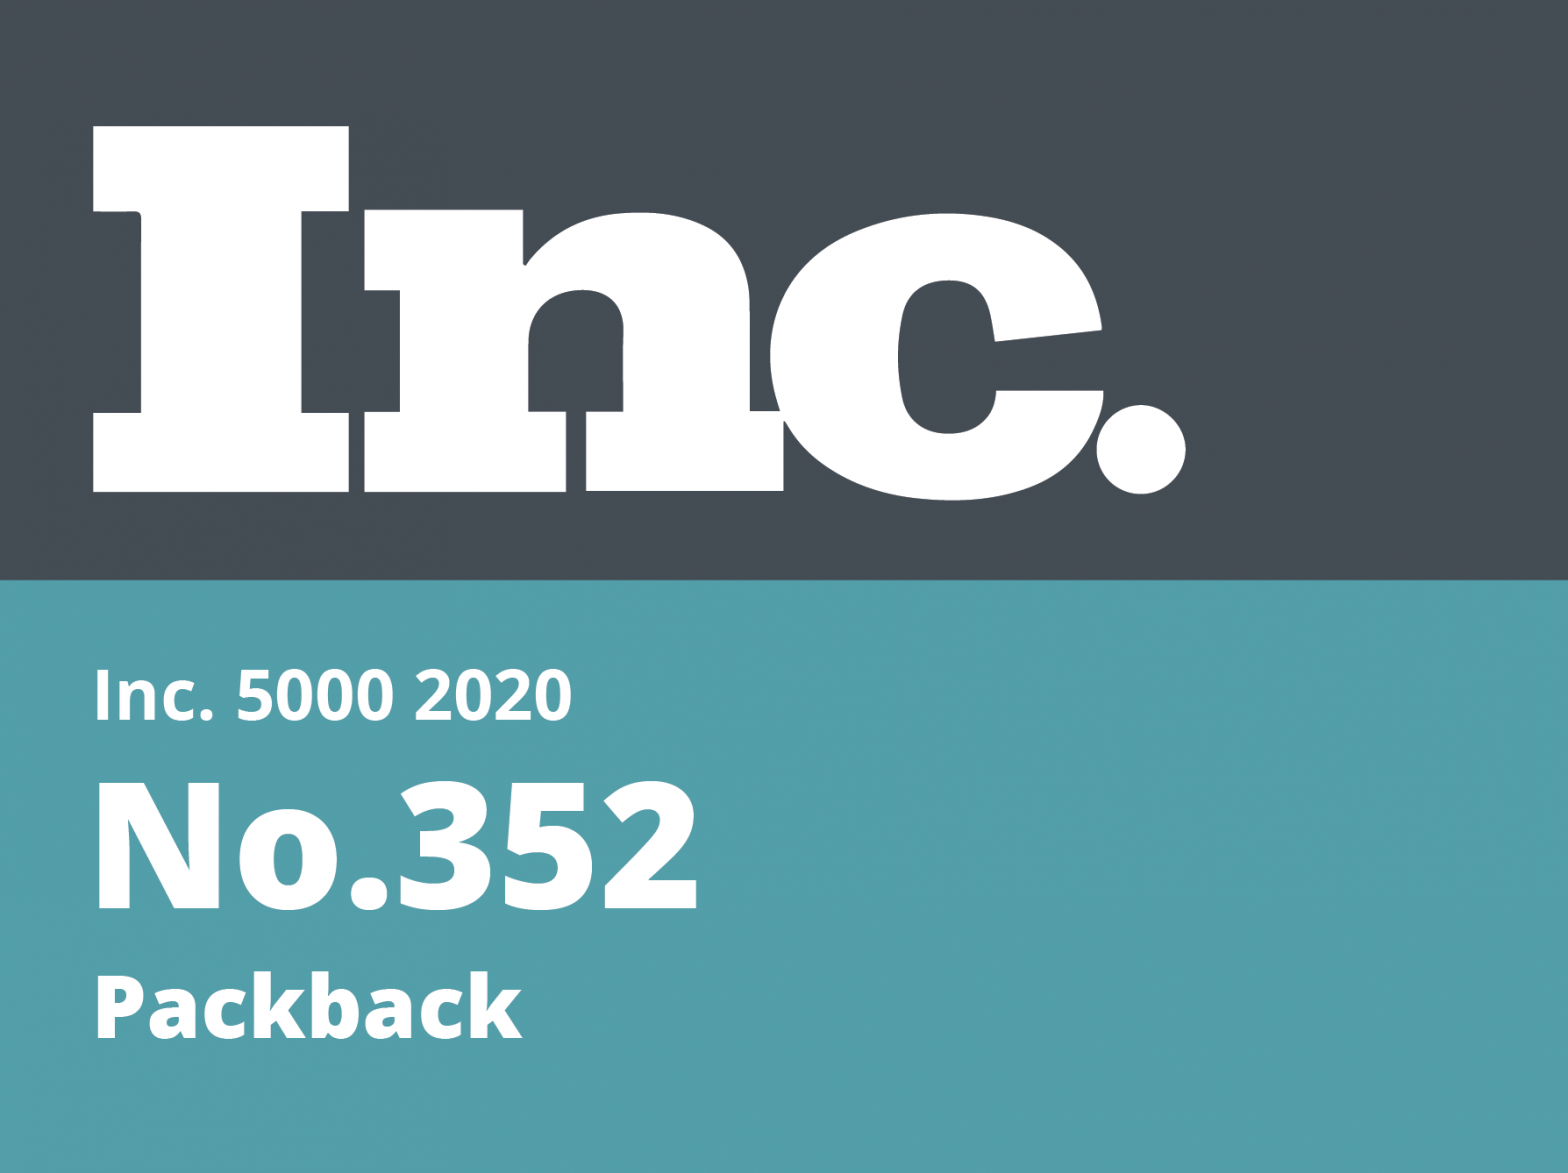 Image showing the INC. logo and text showing Packback and the ranking #352